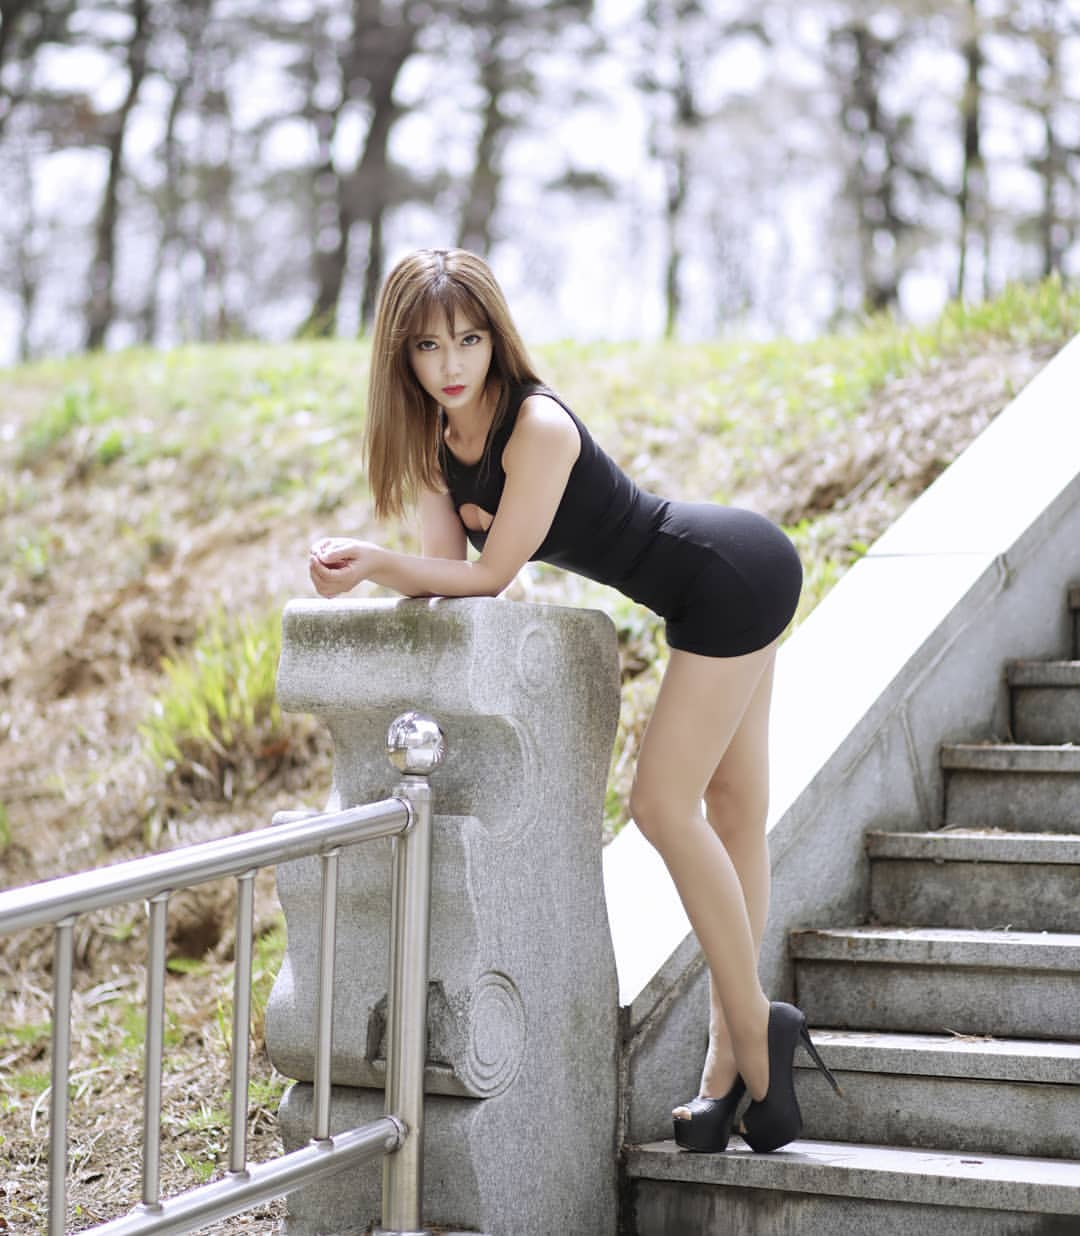 Random photos of girls in doggy position wearing dresses